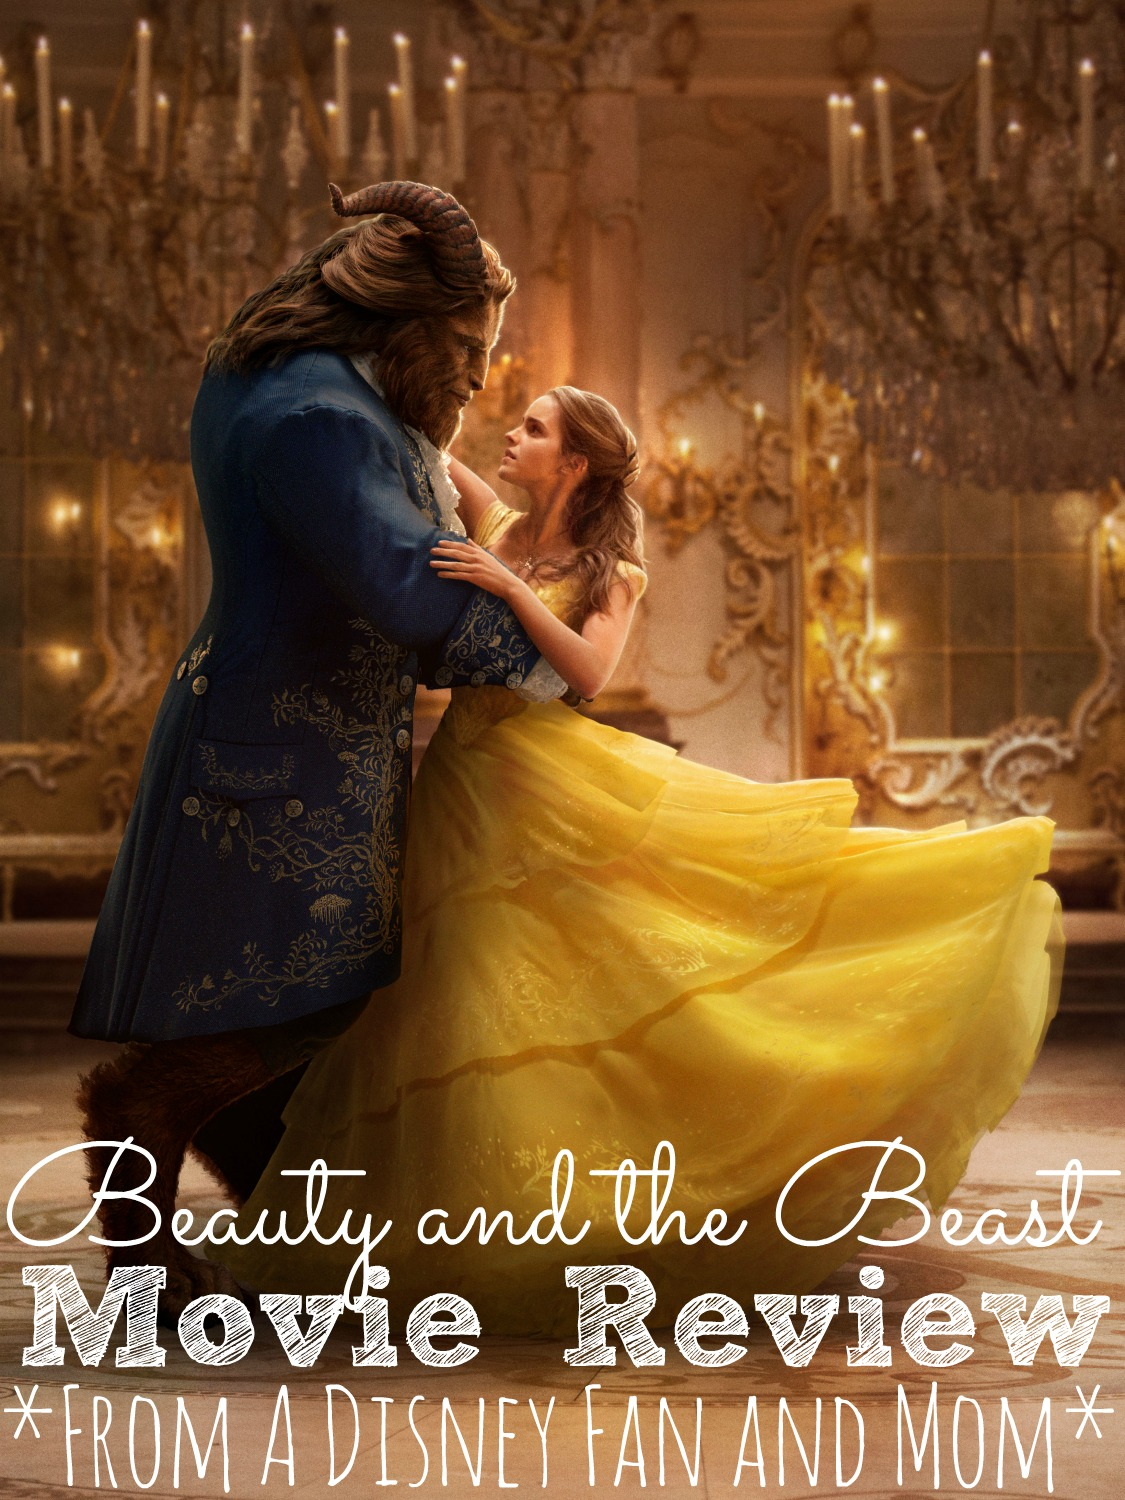 Disney's Beauty and the Beast Movie Review #BeOurGuest - simplytodaylife.com